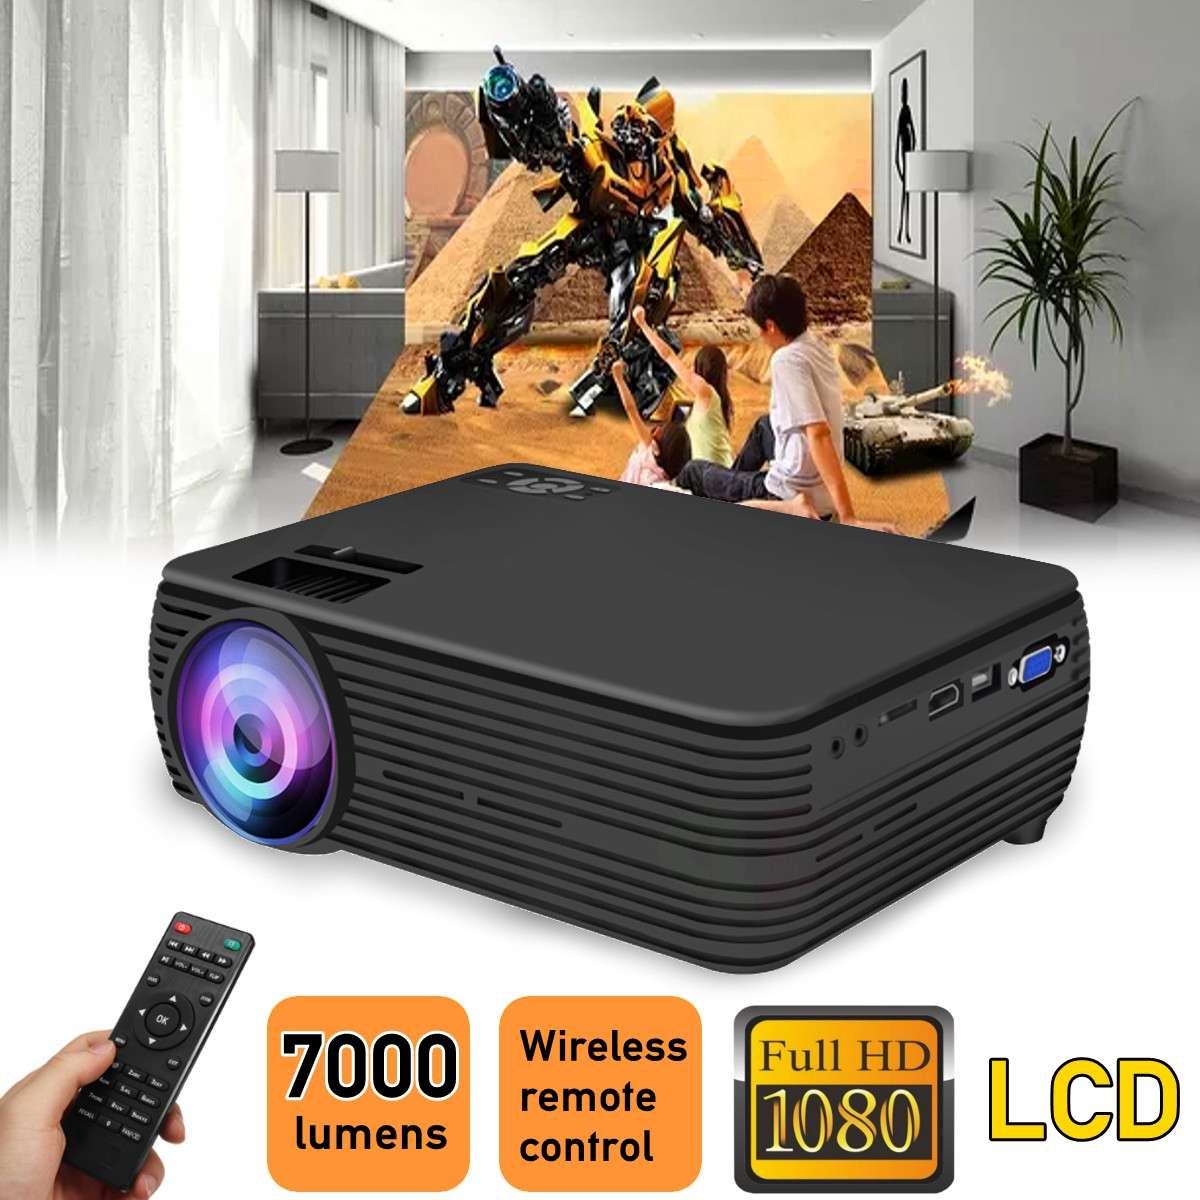 LCD Projector Support 1080p HD Multimedia Home Cinema Smart Home Theater LED Projector HDMI-compatible VGA AV SD USB